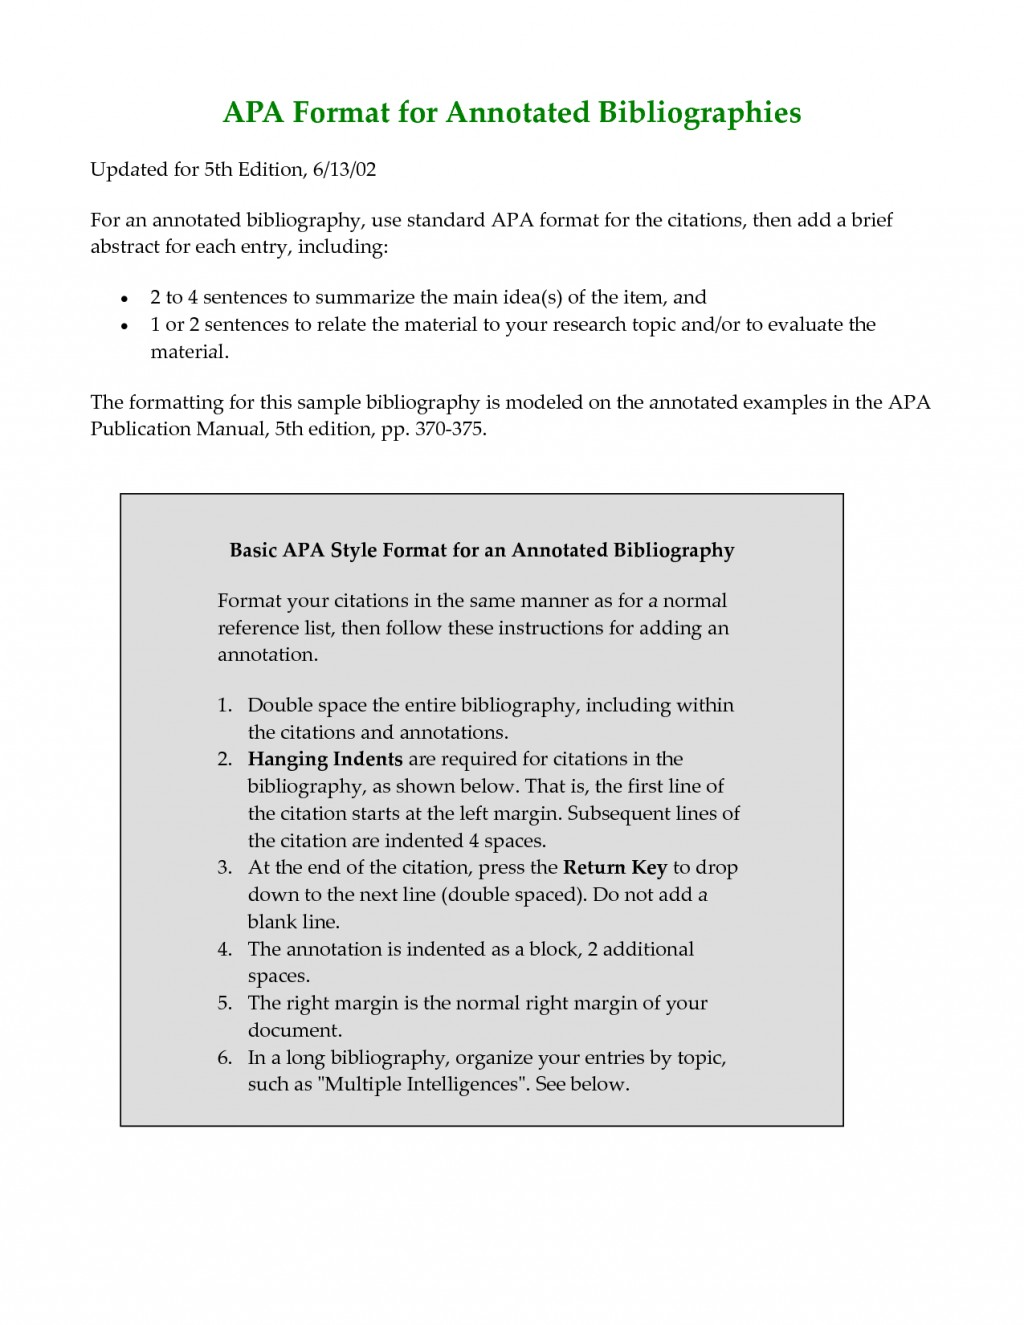 012 Annotated Bibliography Research Paper Wonderful Sample Large